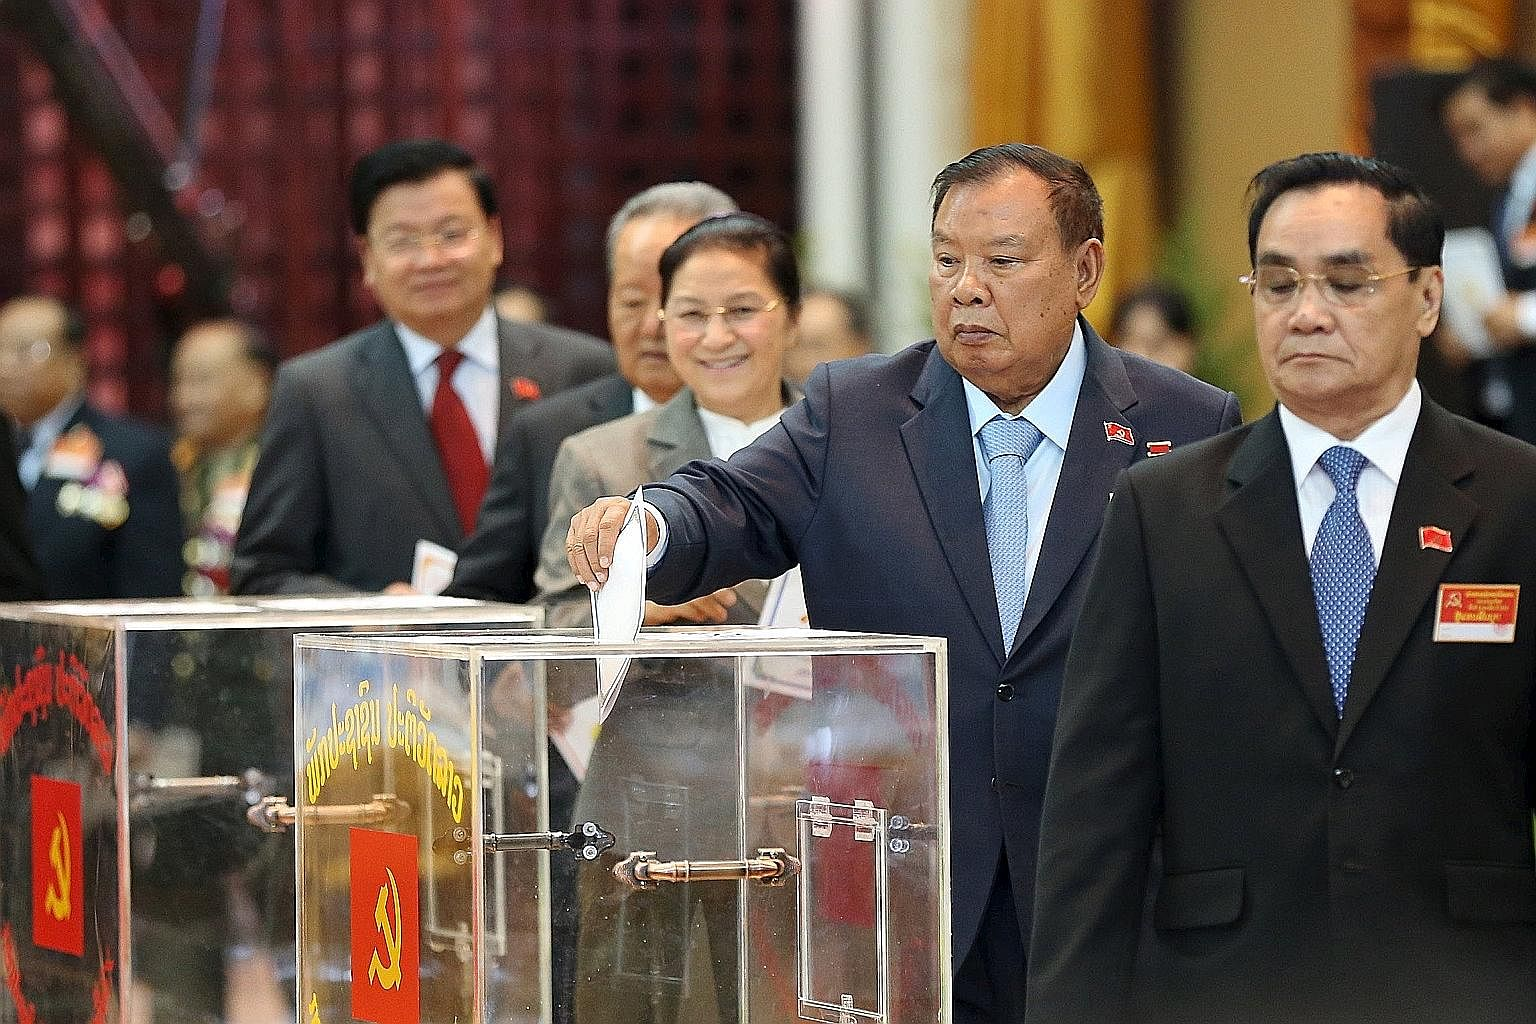 Lao leader ready to elect | The Straits Times